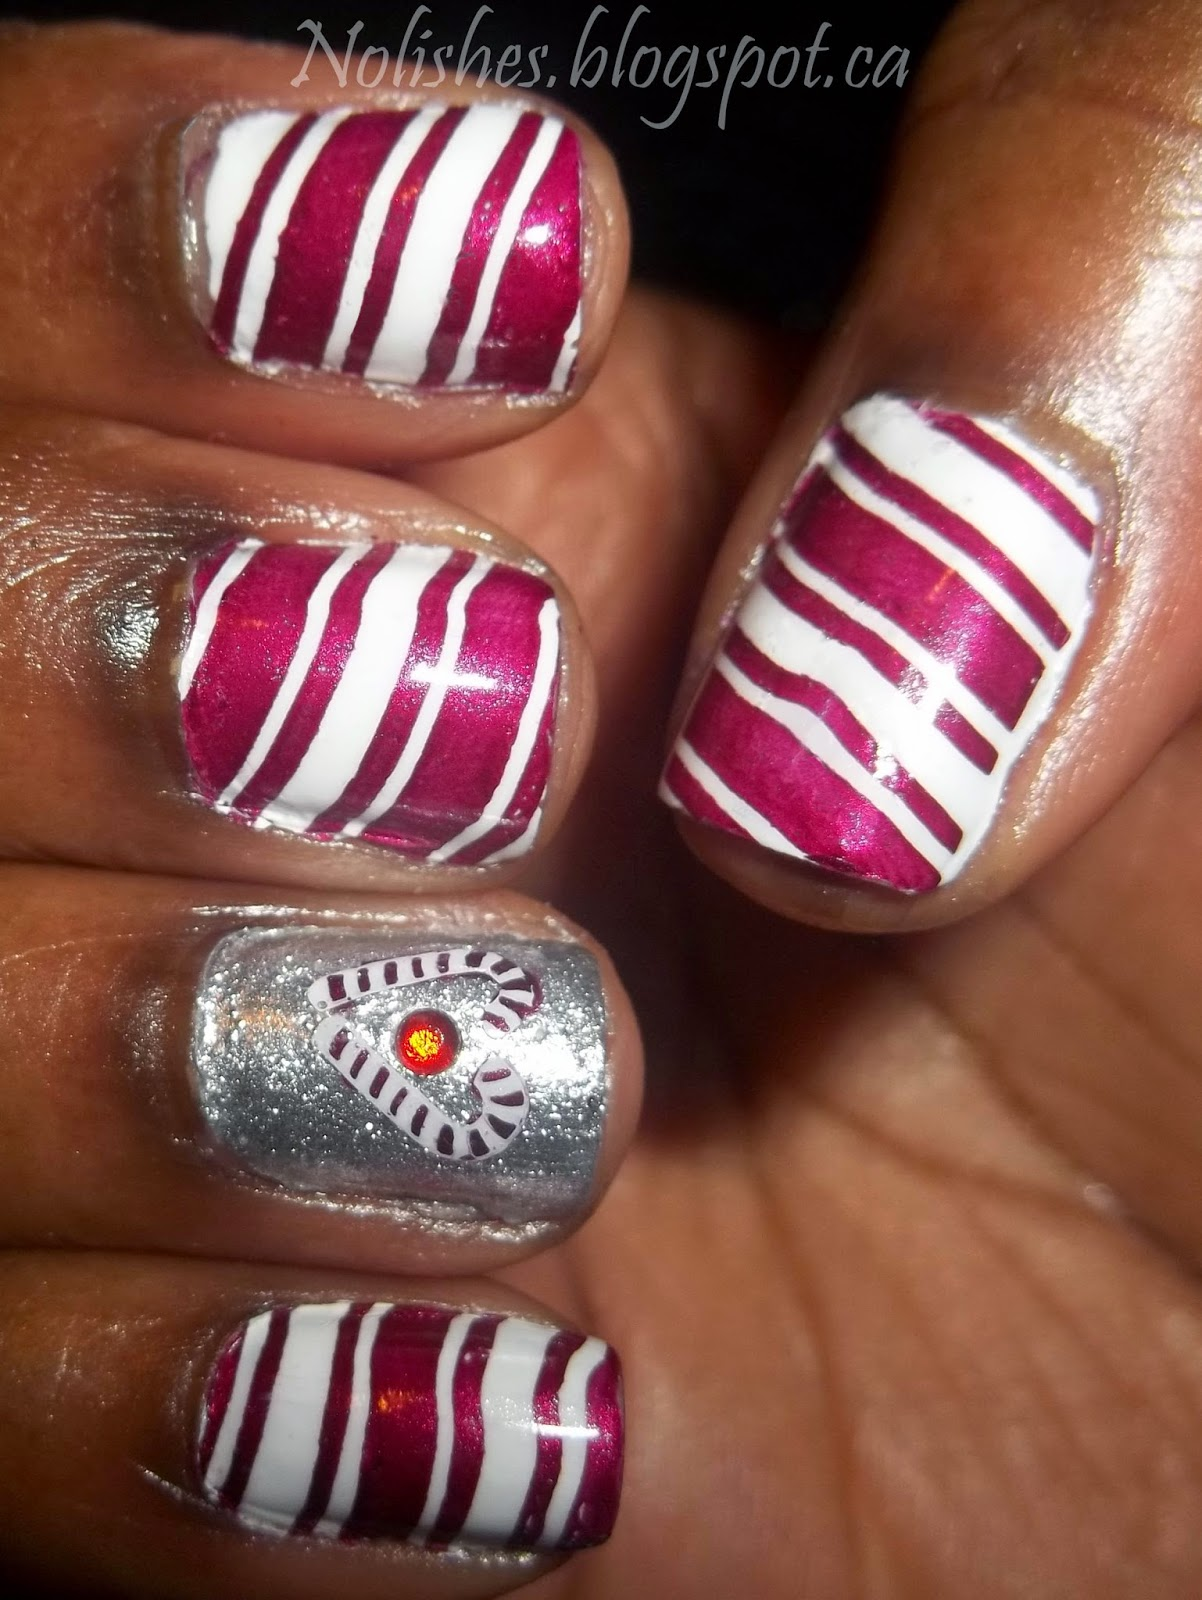 Nail stamping manicure featuring red and white striped nails, and ring finger accent nail with sparkly silver base colour, with 2 candy canes arranged in a heart shape, with a red nail art rhinestone in the centre of the candy-cane heart.